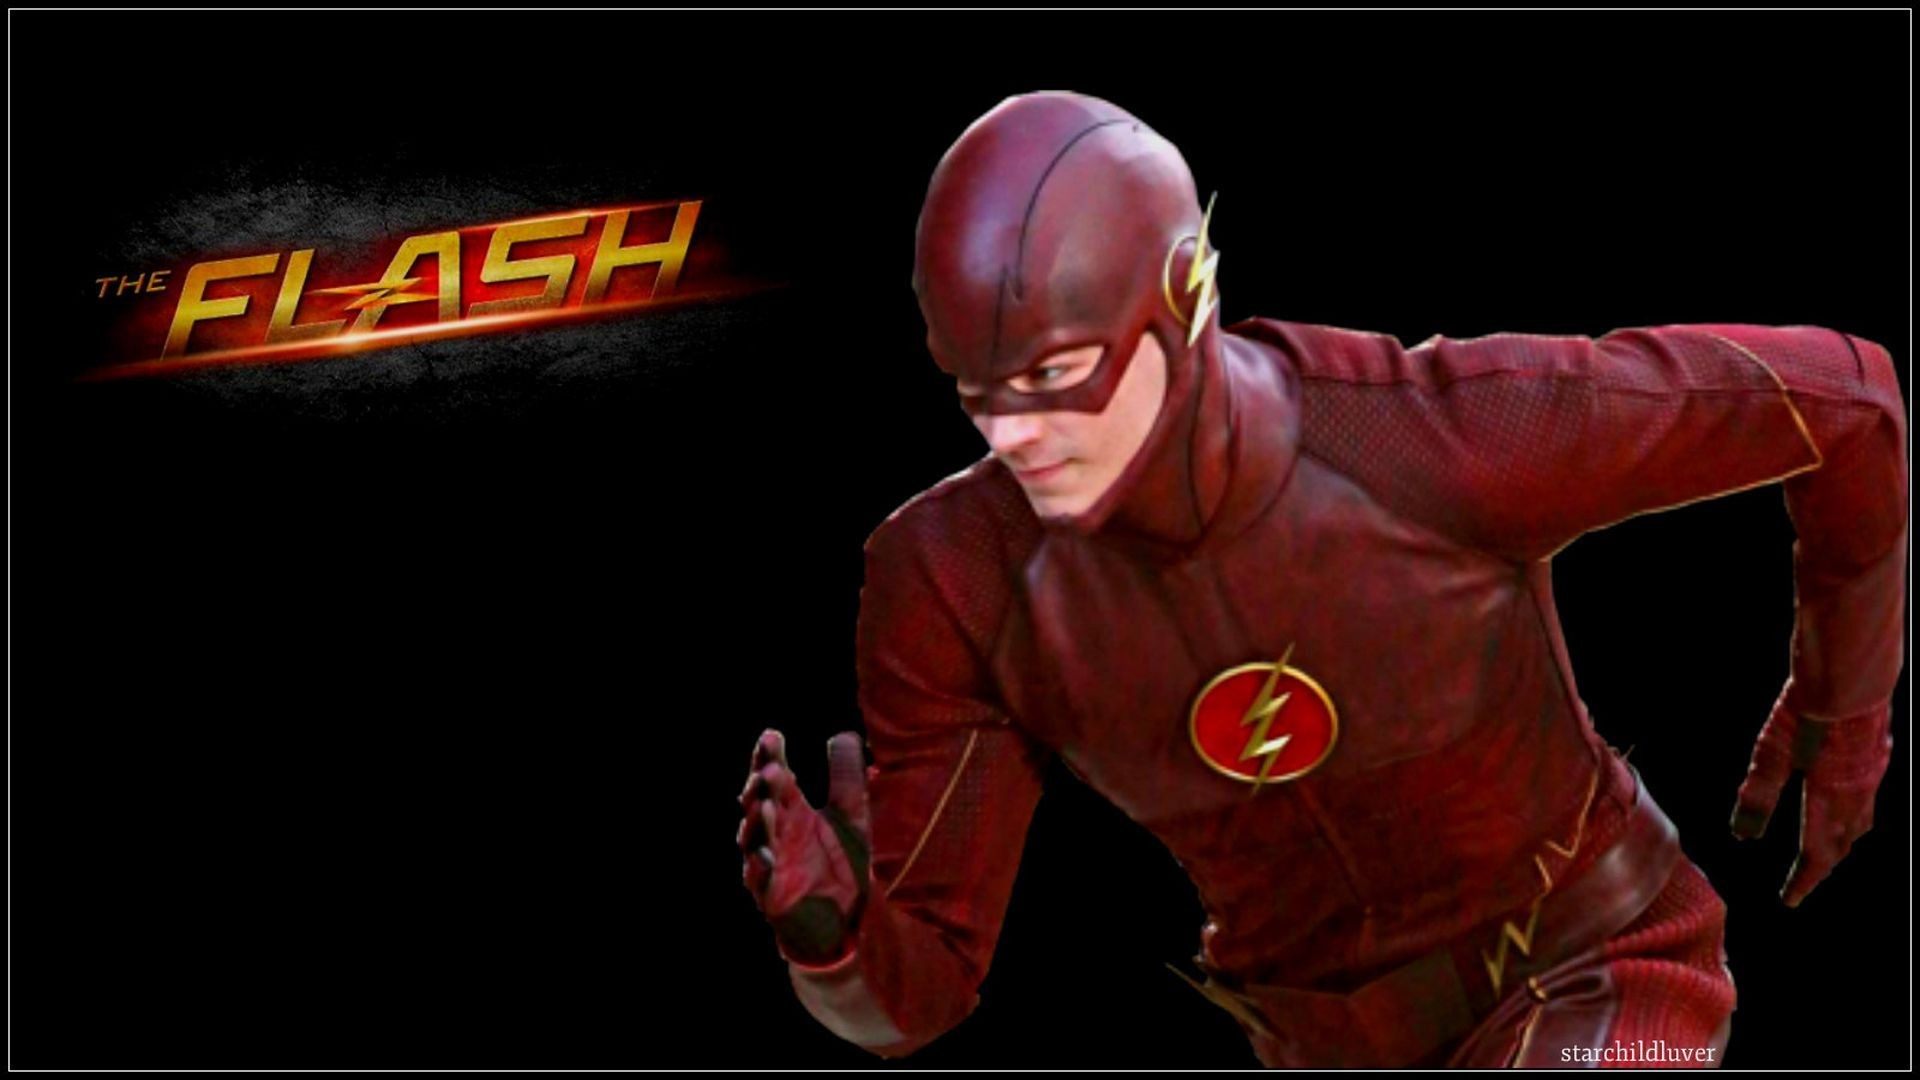 The Flash Wallpaper Backgrounds